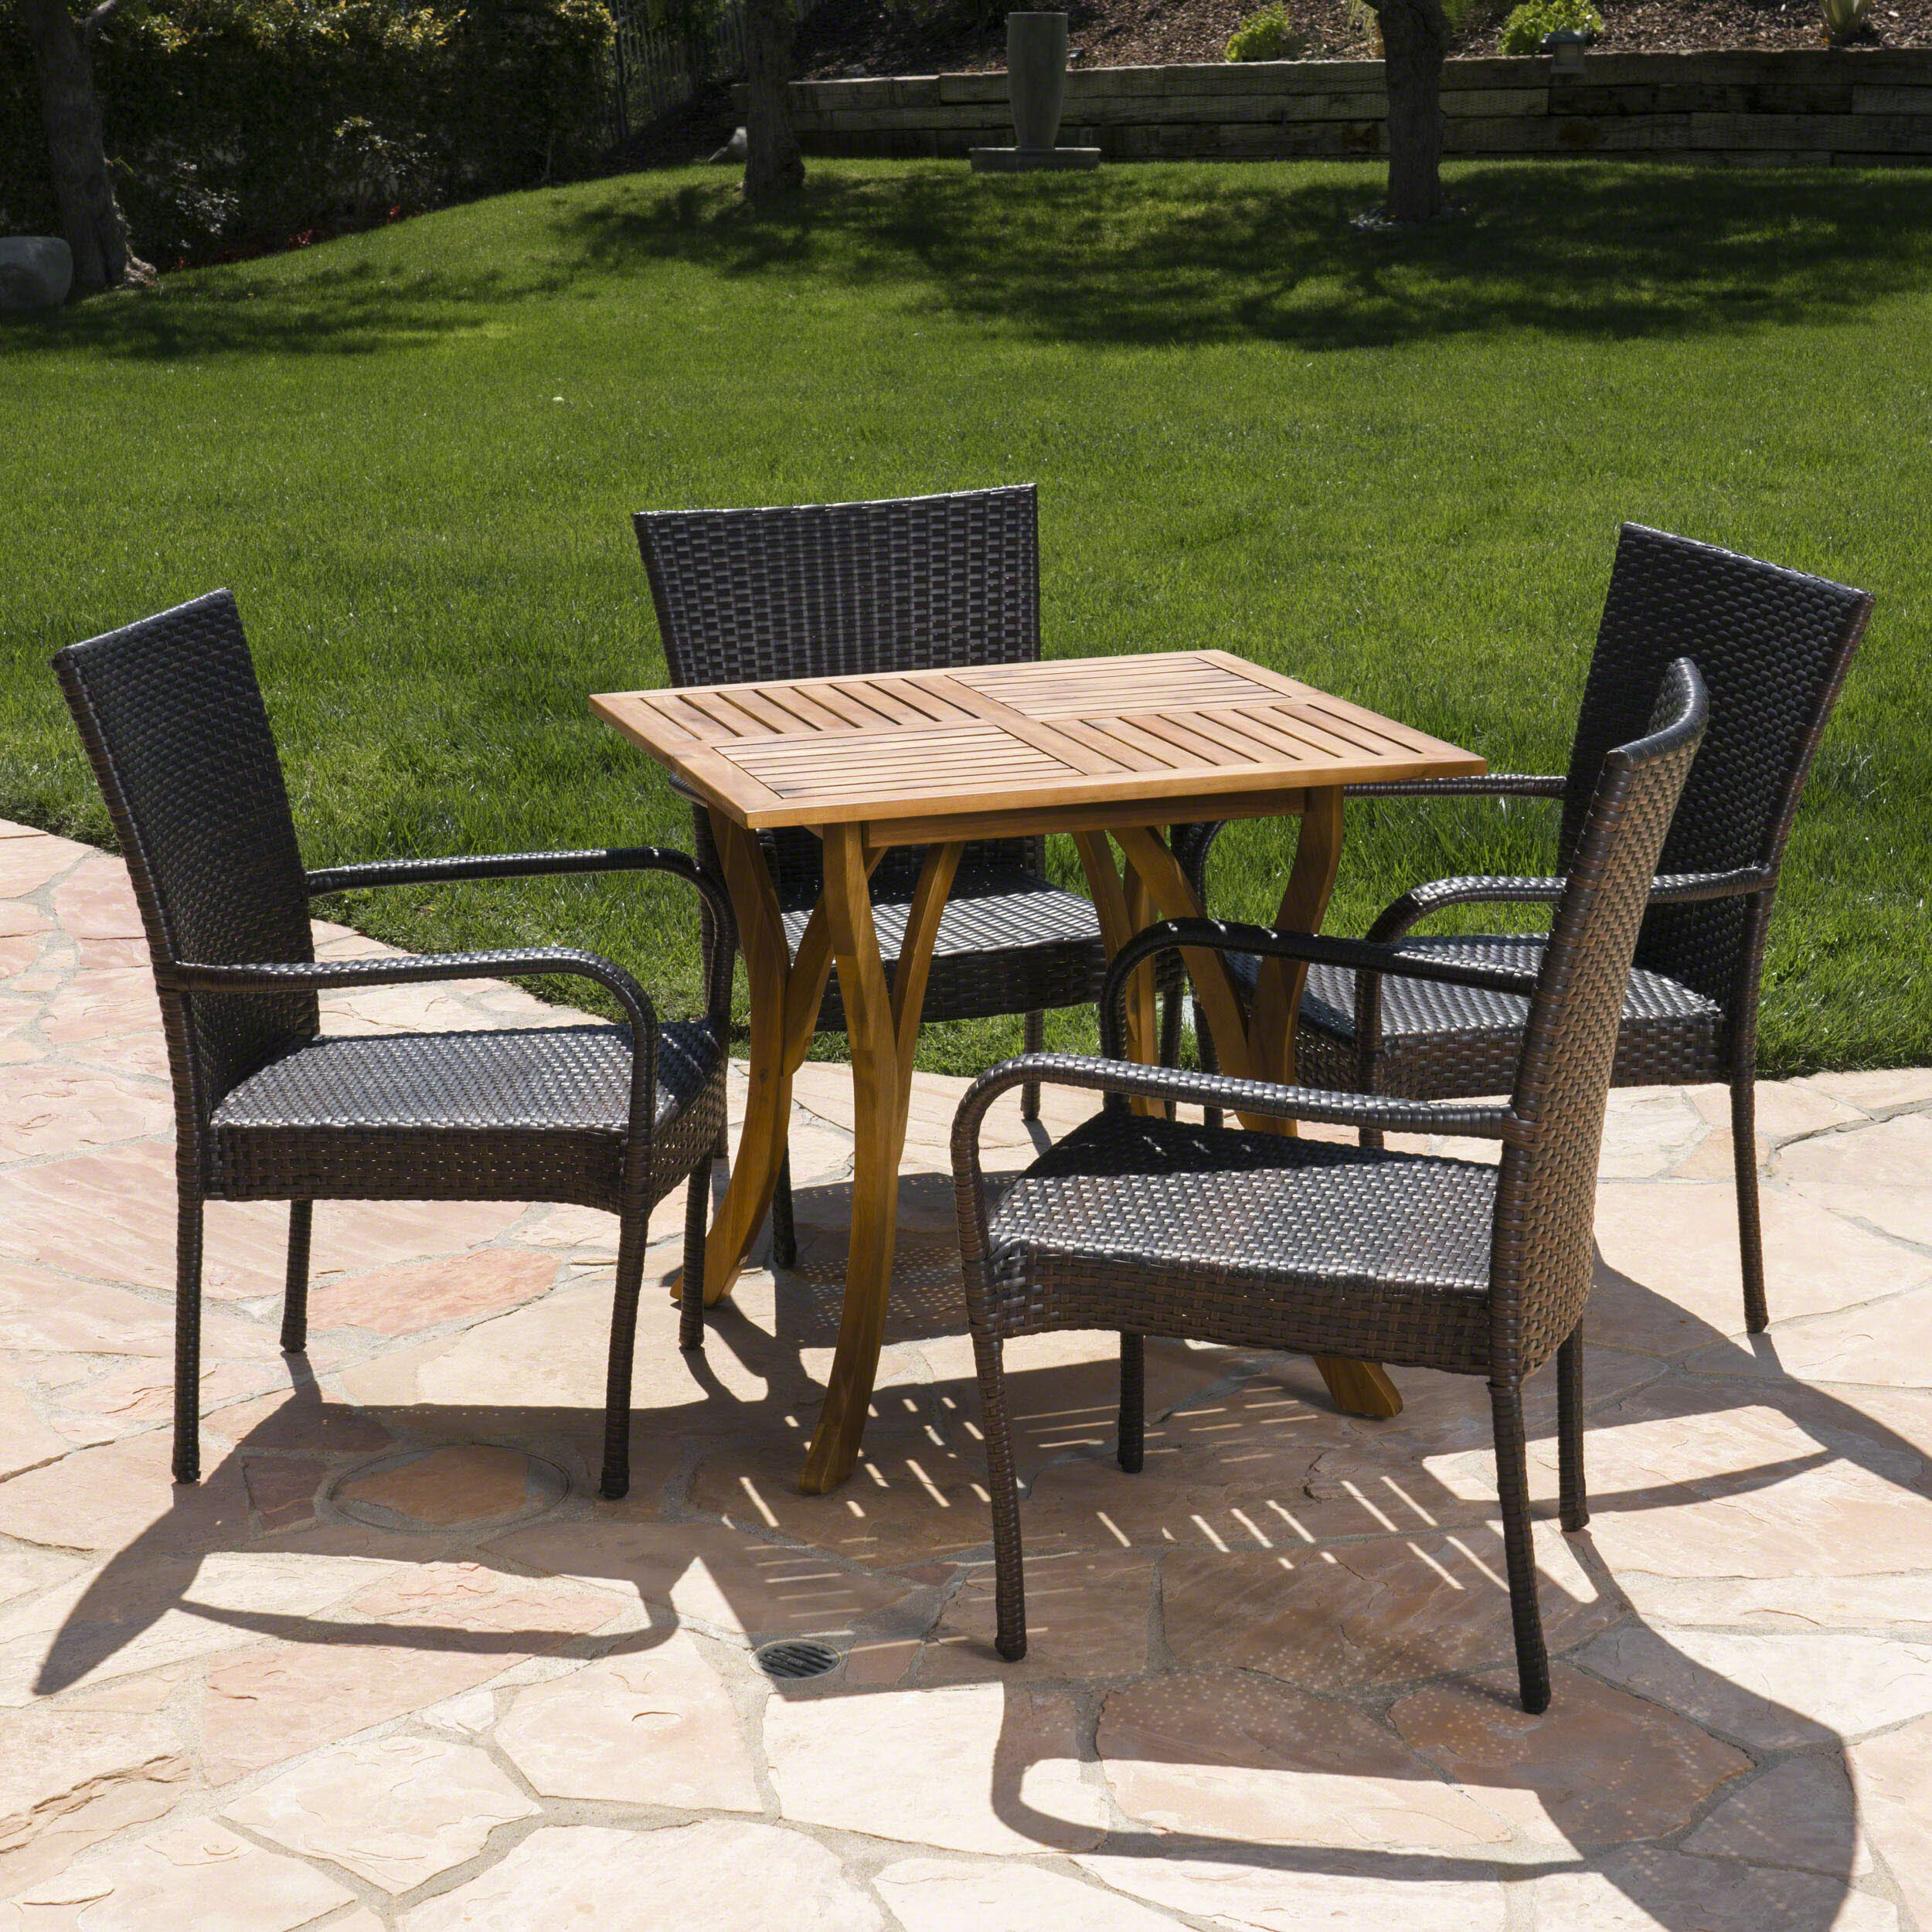 Bay isle home fairmont outdoor acacia wood wicker 5 piece dining set wayfair